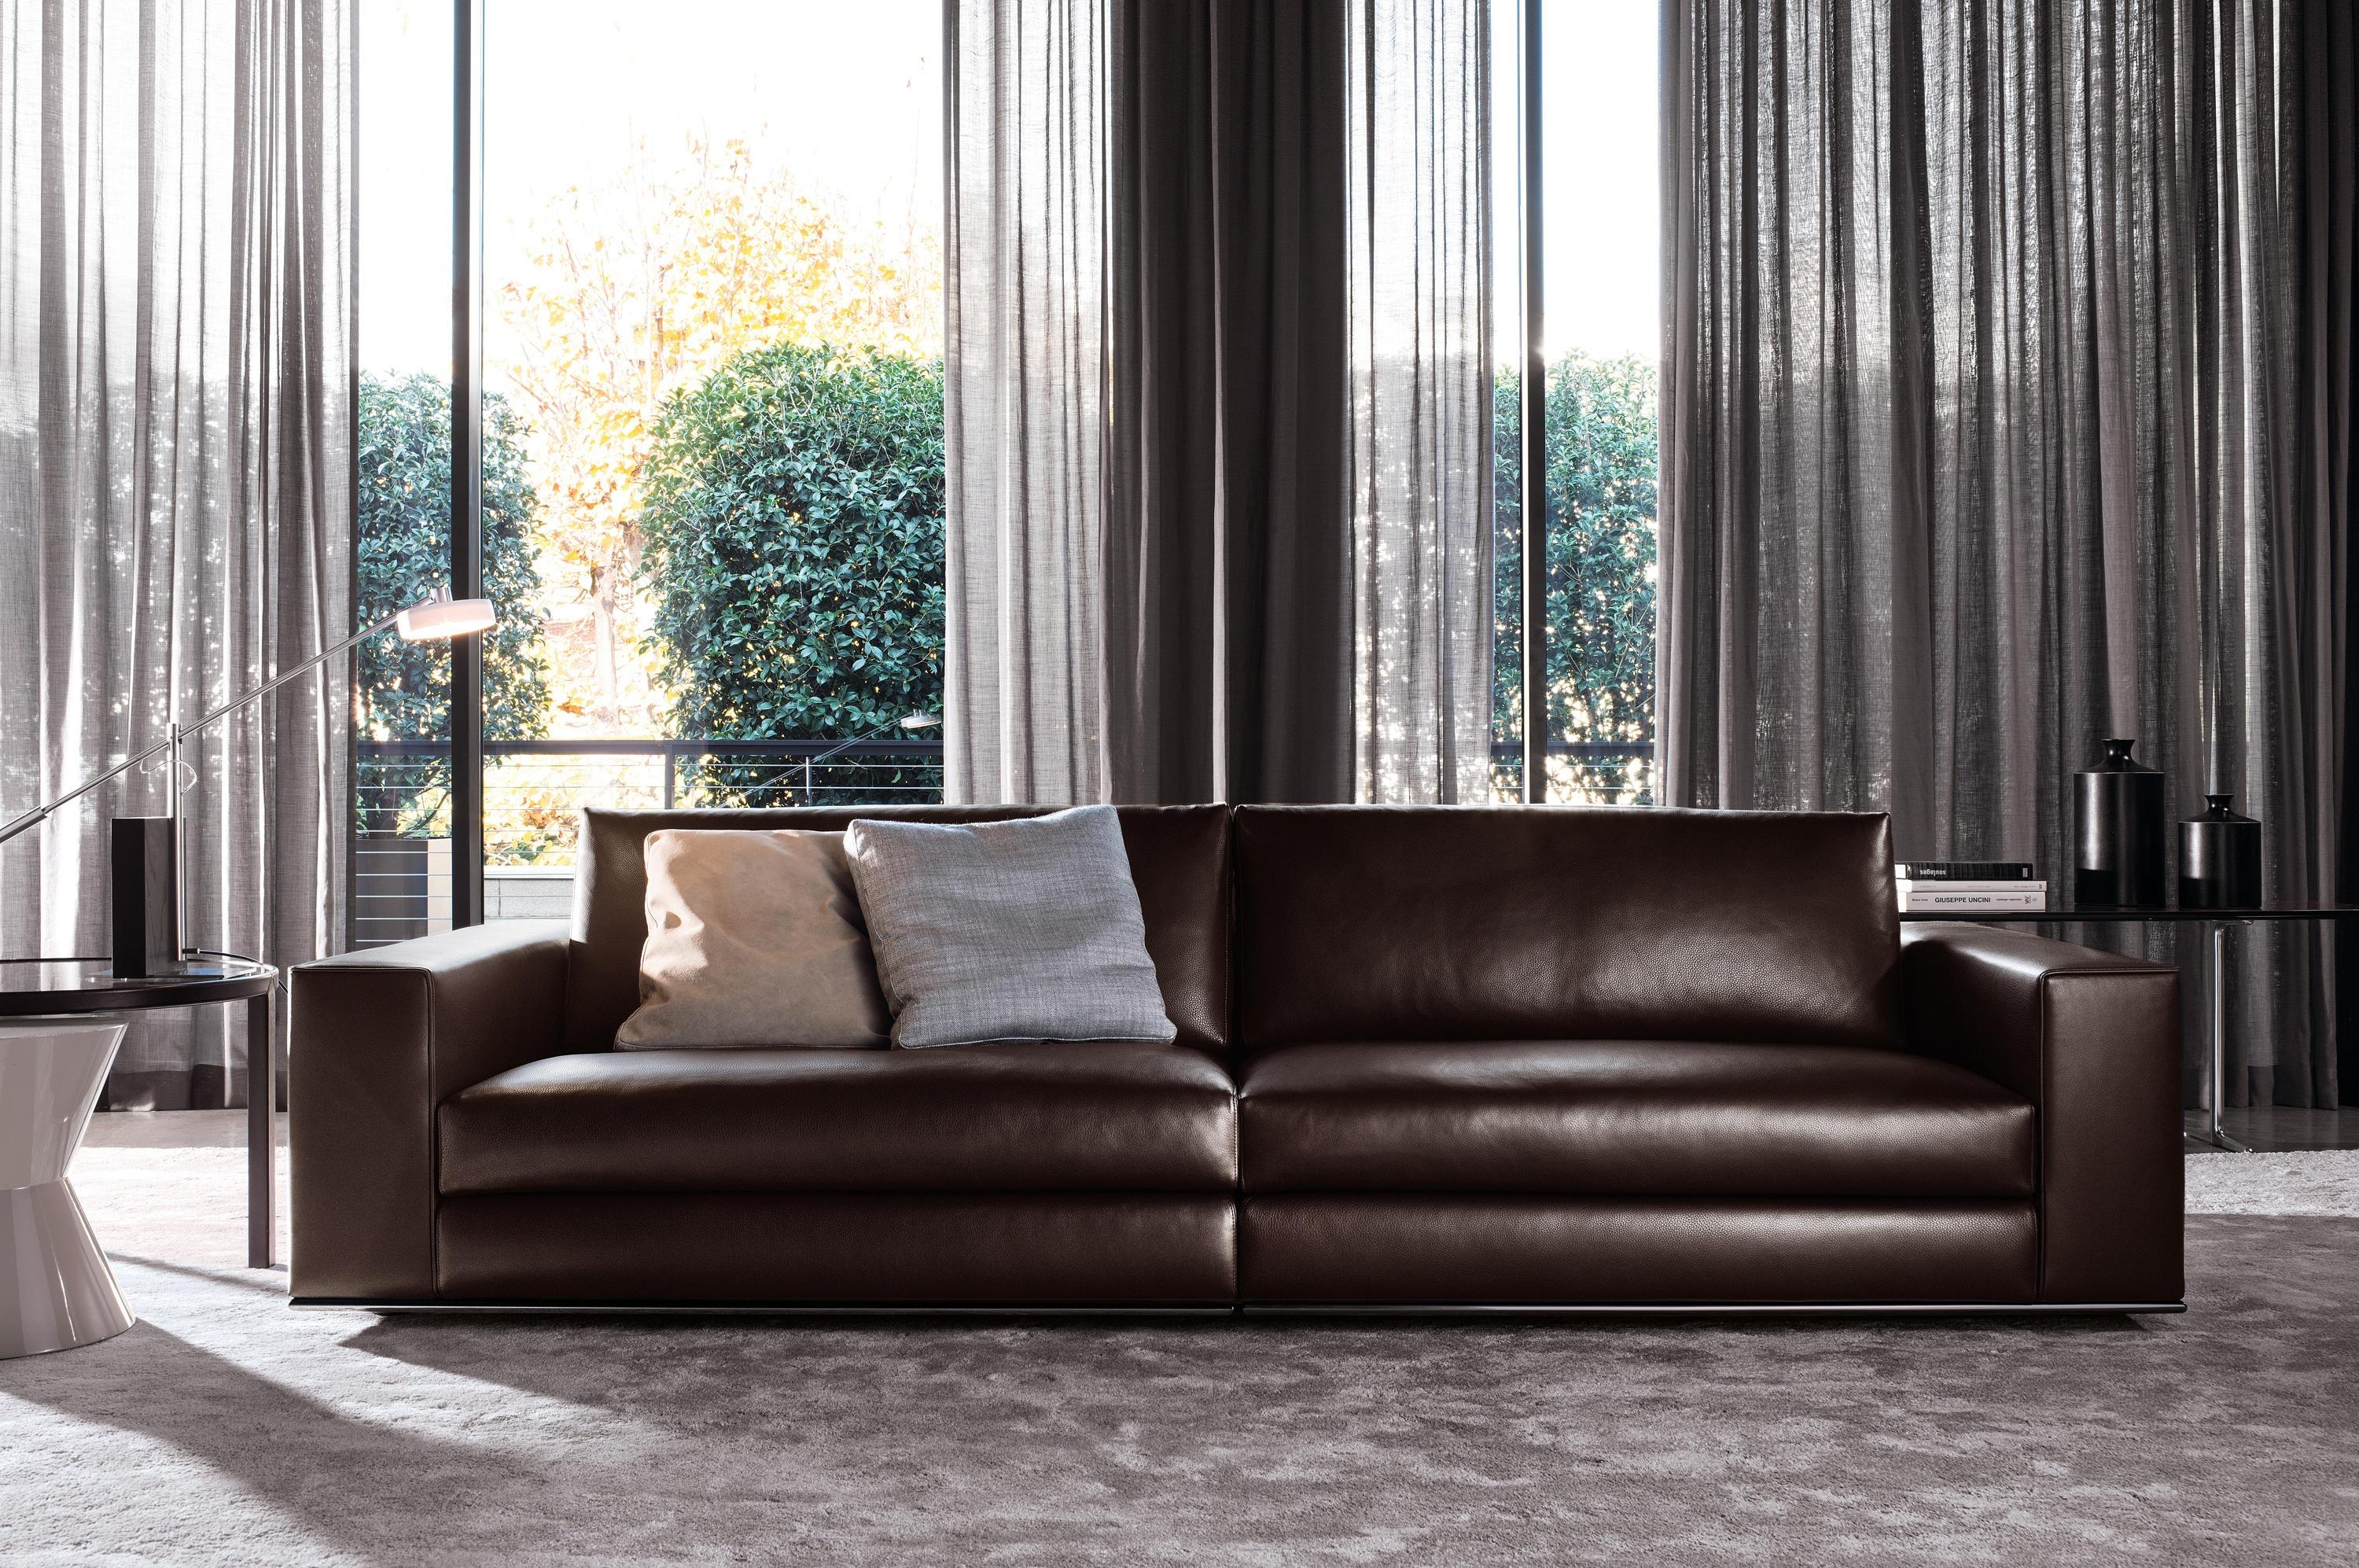 Hamilton – Lounge Sofas From Minotti | Architonic Intended For Hamilton Sofas (View 15 of 20)